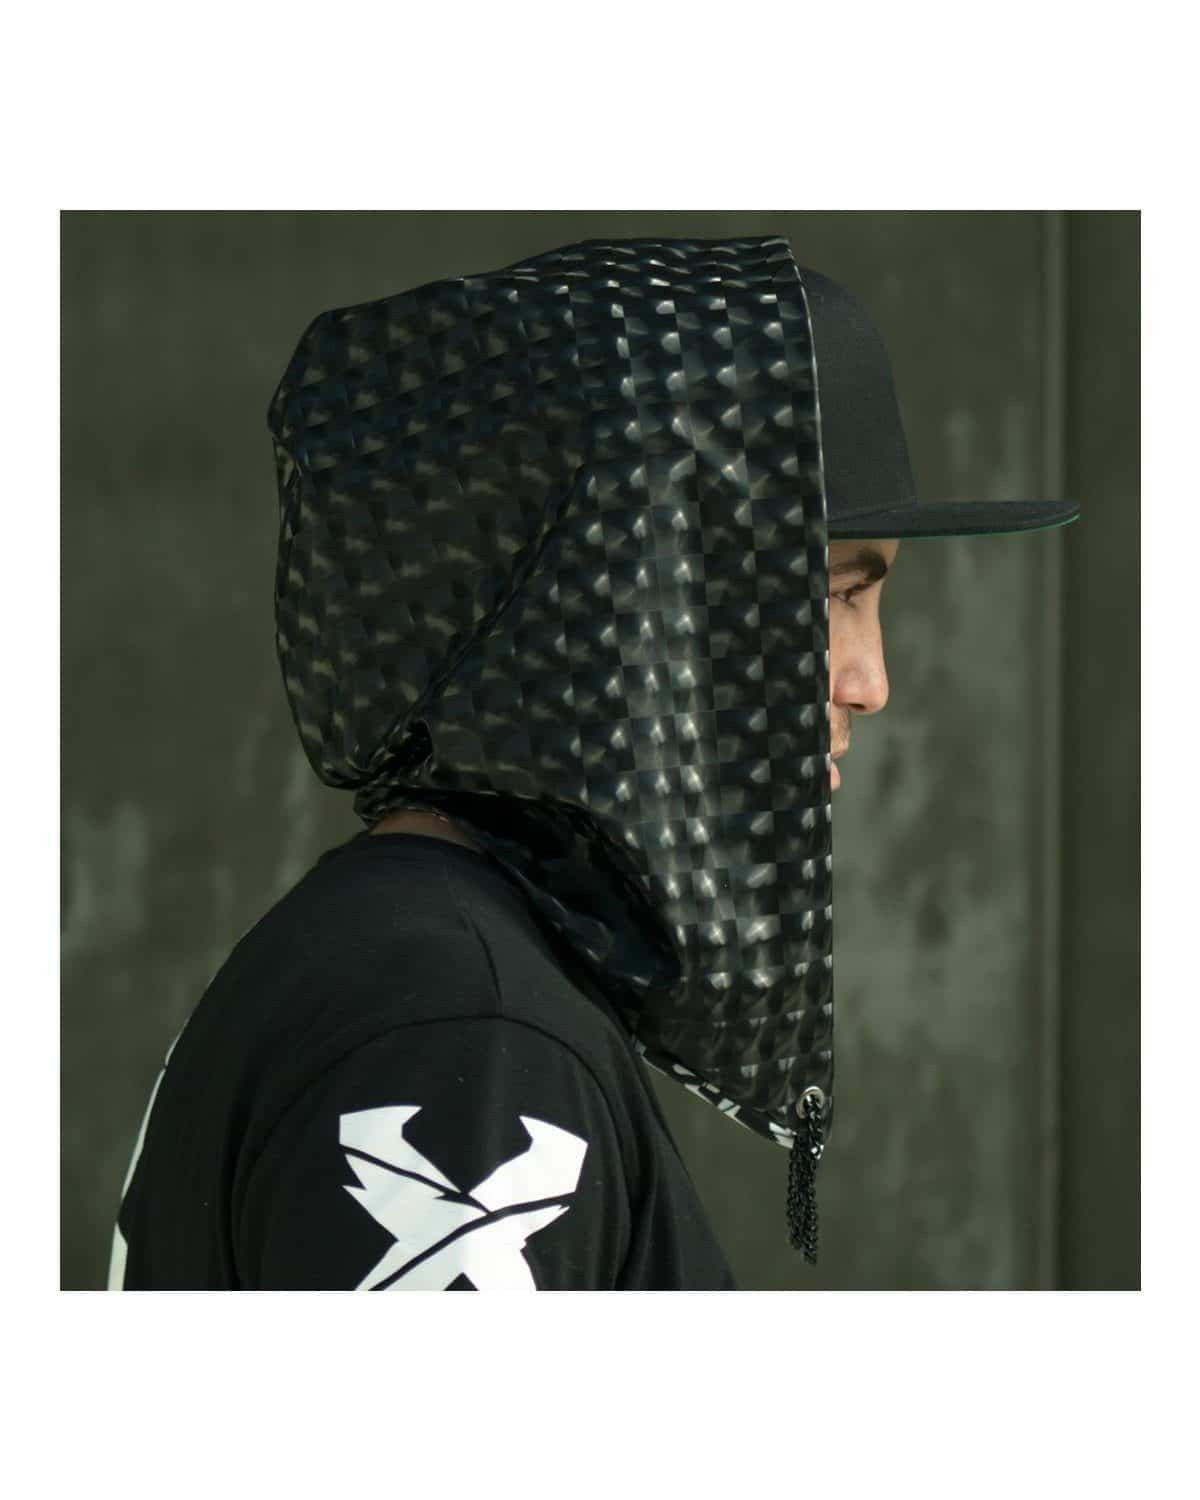 Excision Unisex Dark Disco Spandex Assassin Hood by Freedom Rave Wear